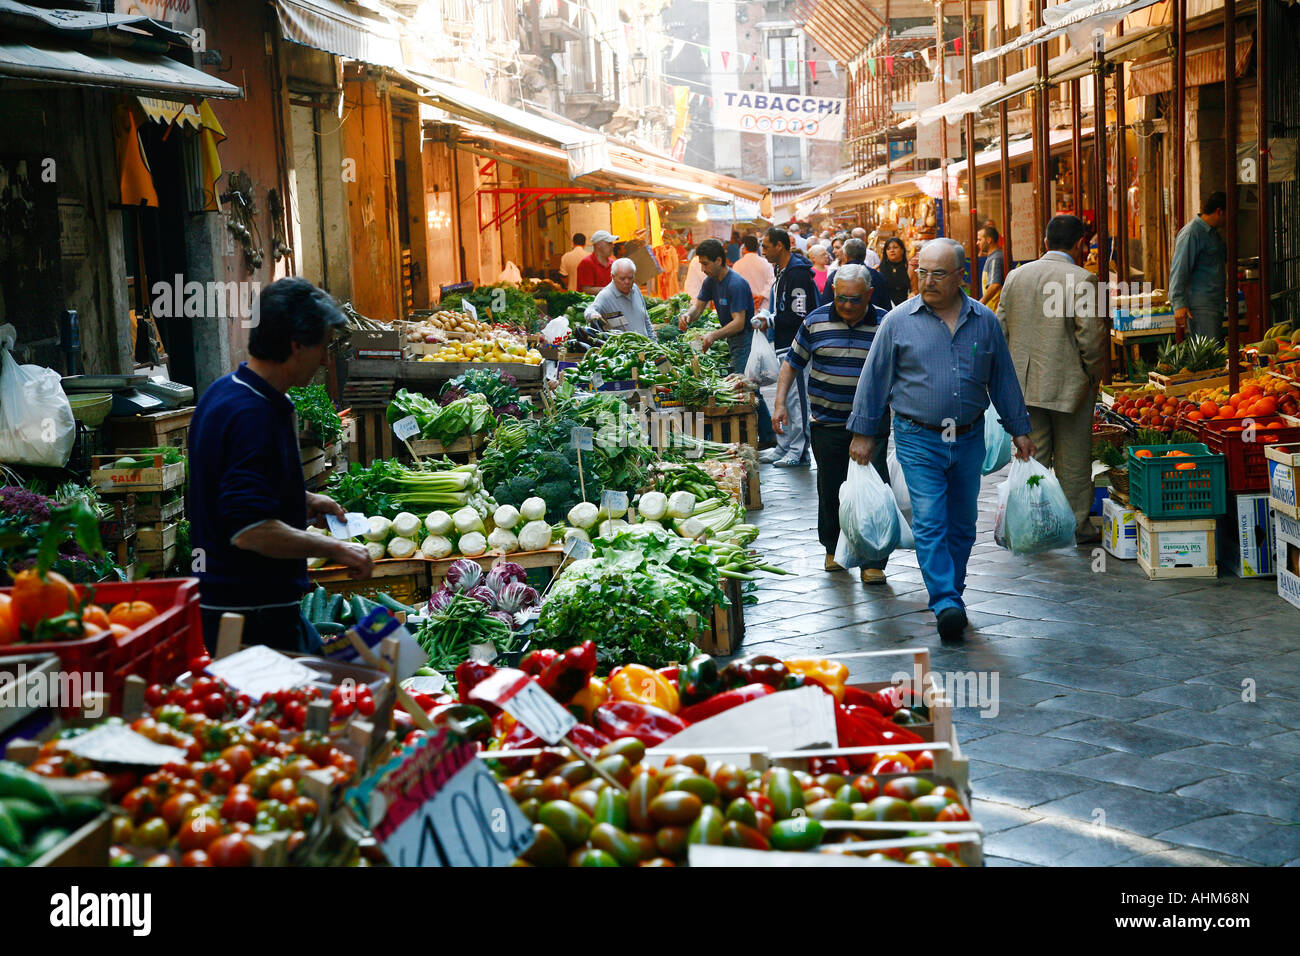 Best Food Markets In Sicily